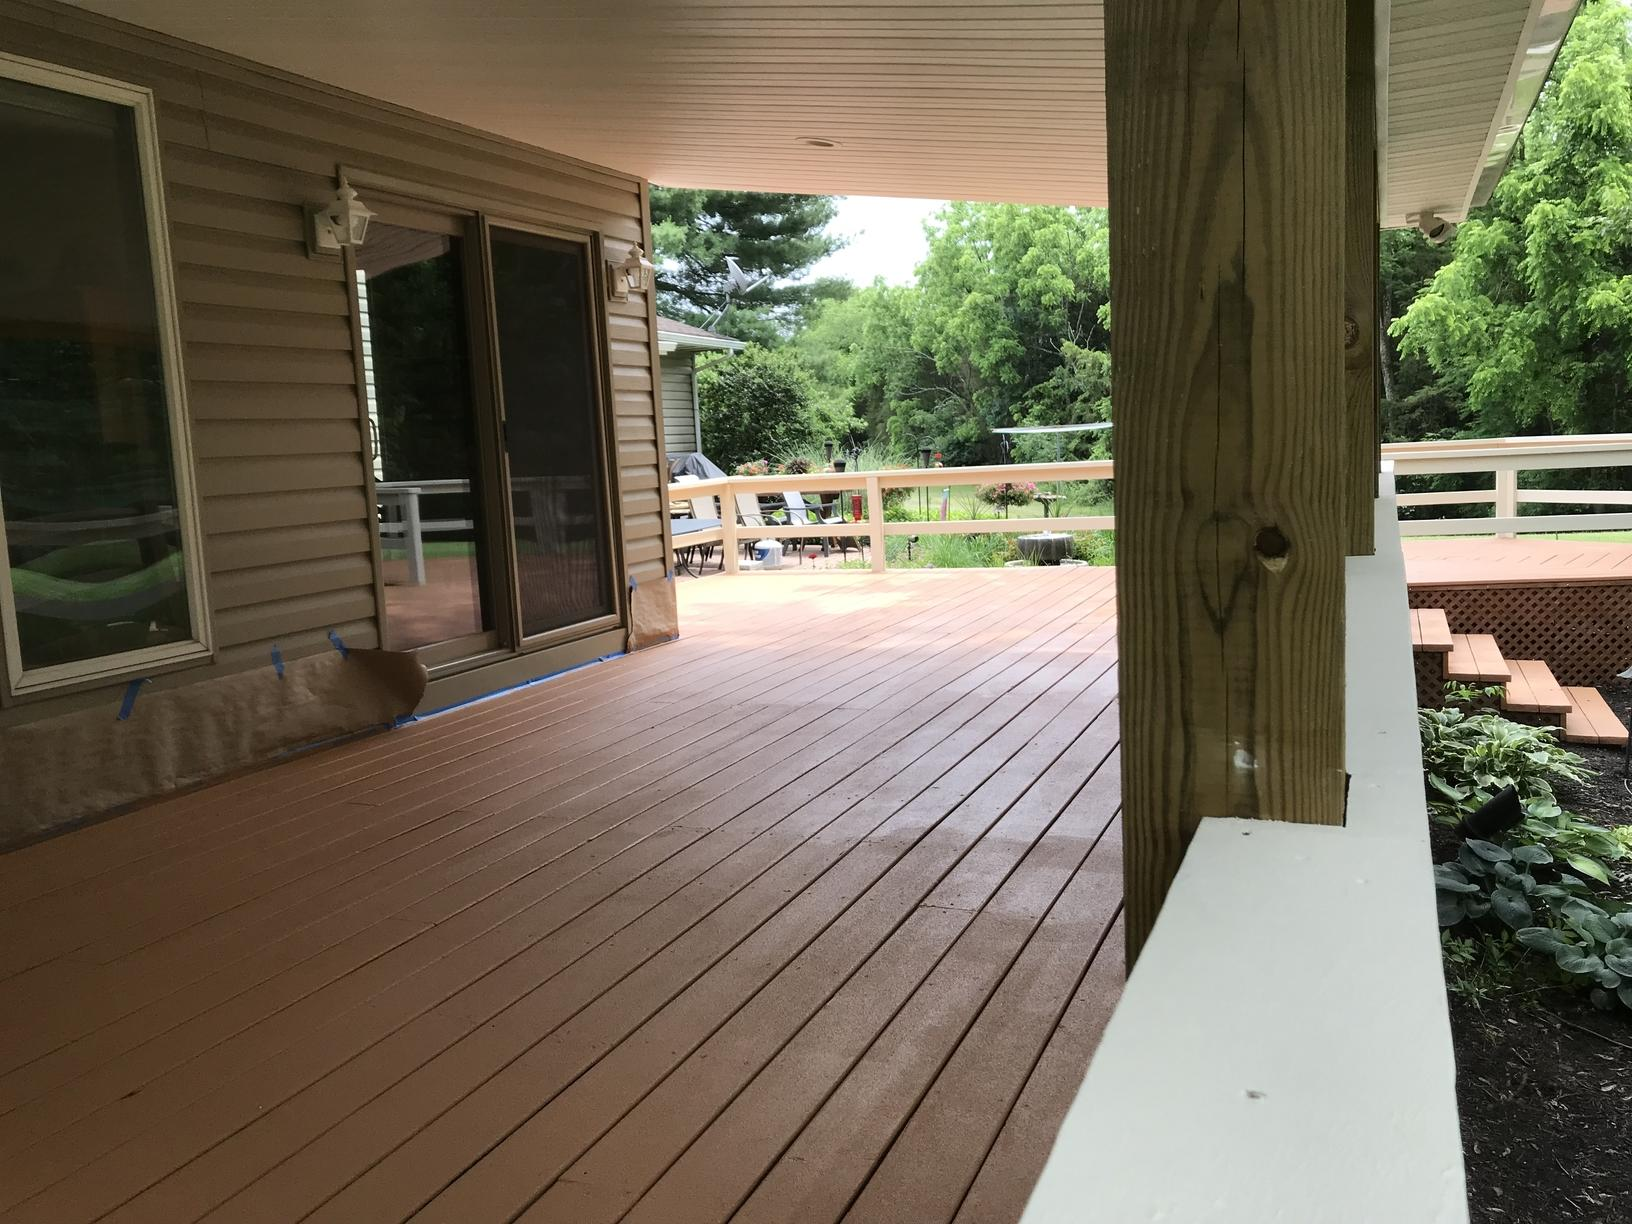 Deck Coating Applied in Gettysburg, PA - After Photo